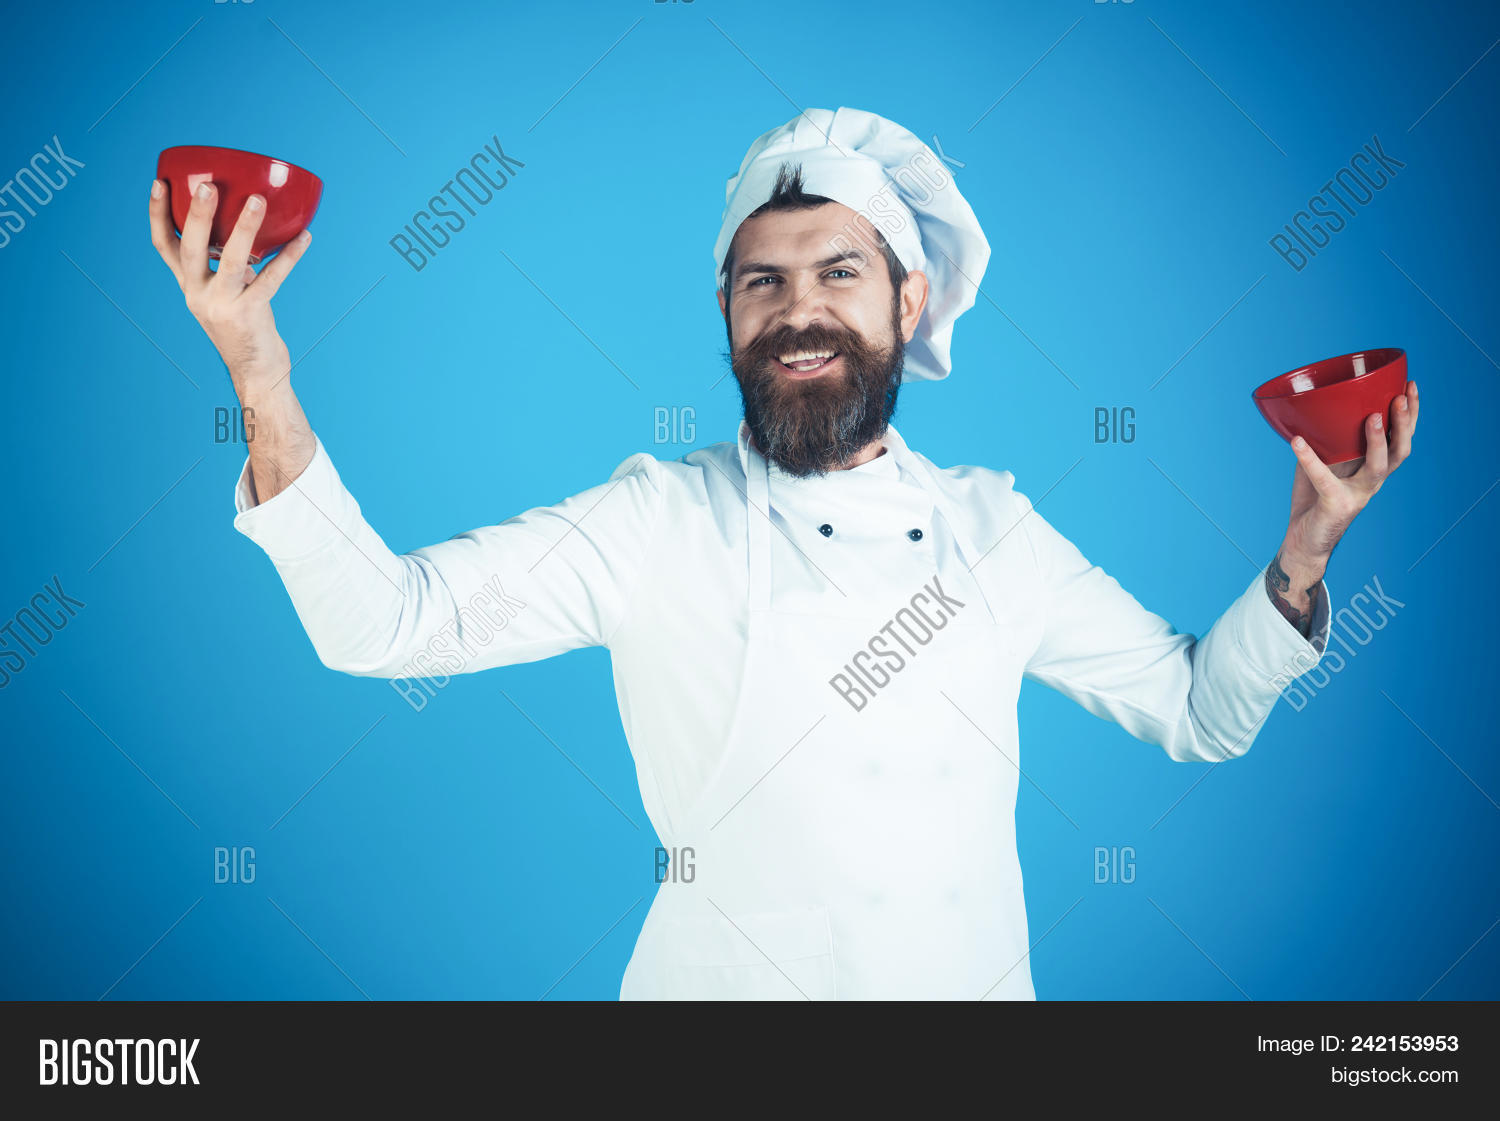 apron,background,beard,bearded,black,body,bowl,burgundy,caucasian,chef,concept,cook,cooking,cuisine,culinary,diet,face,food,green,hair,happy,hat,hold,ingredient,isolated,kitchen,lettuce,macho,male,man,meal,moustache,nutrition,pasta,plate,restaurant,serious,sexy,studio,stylish,uniform,vegetables,vegetarian,white,young